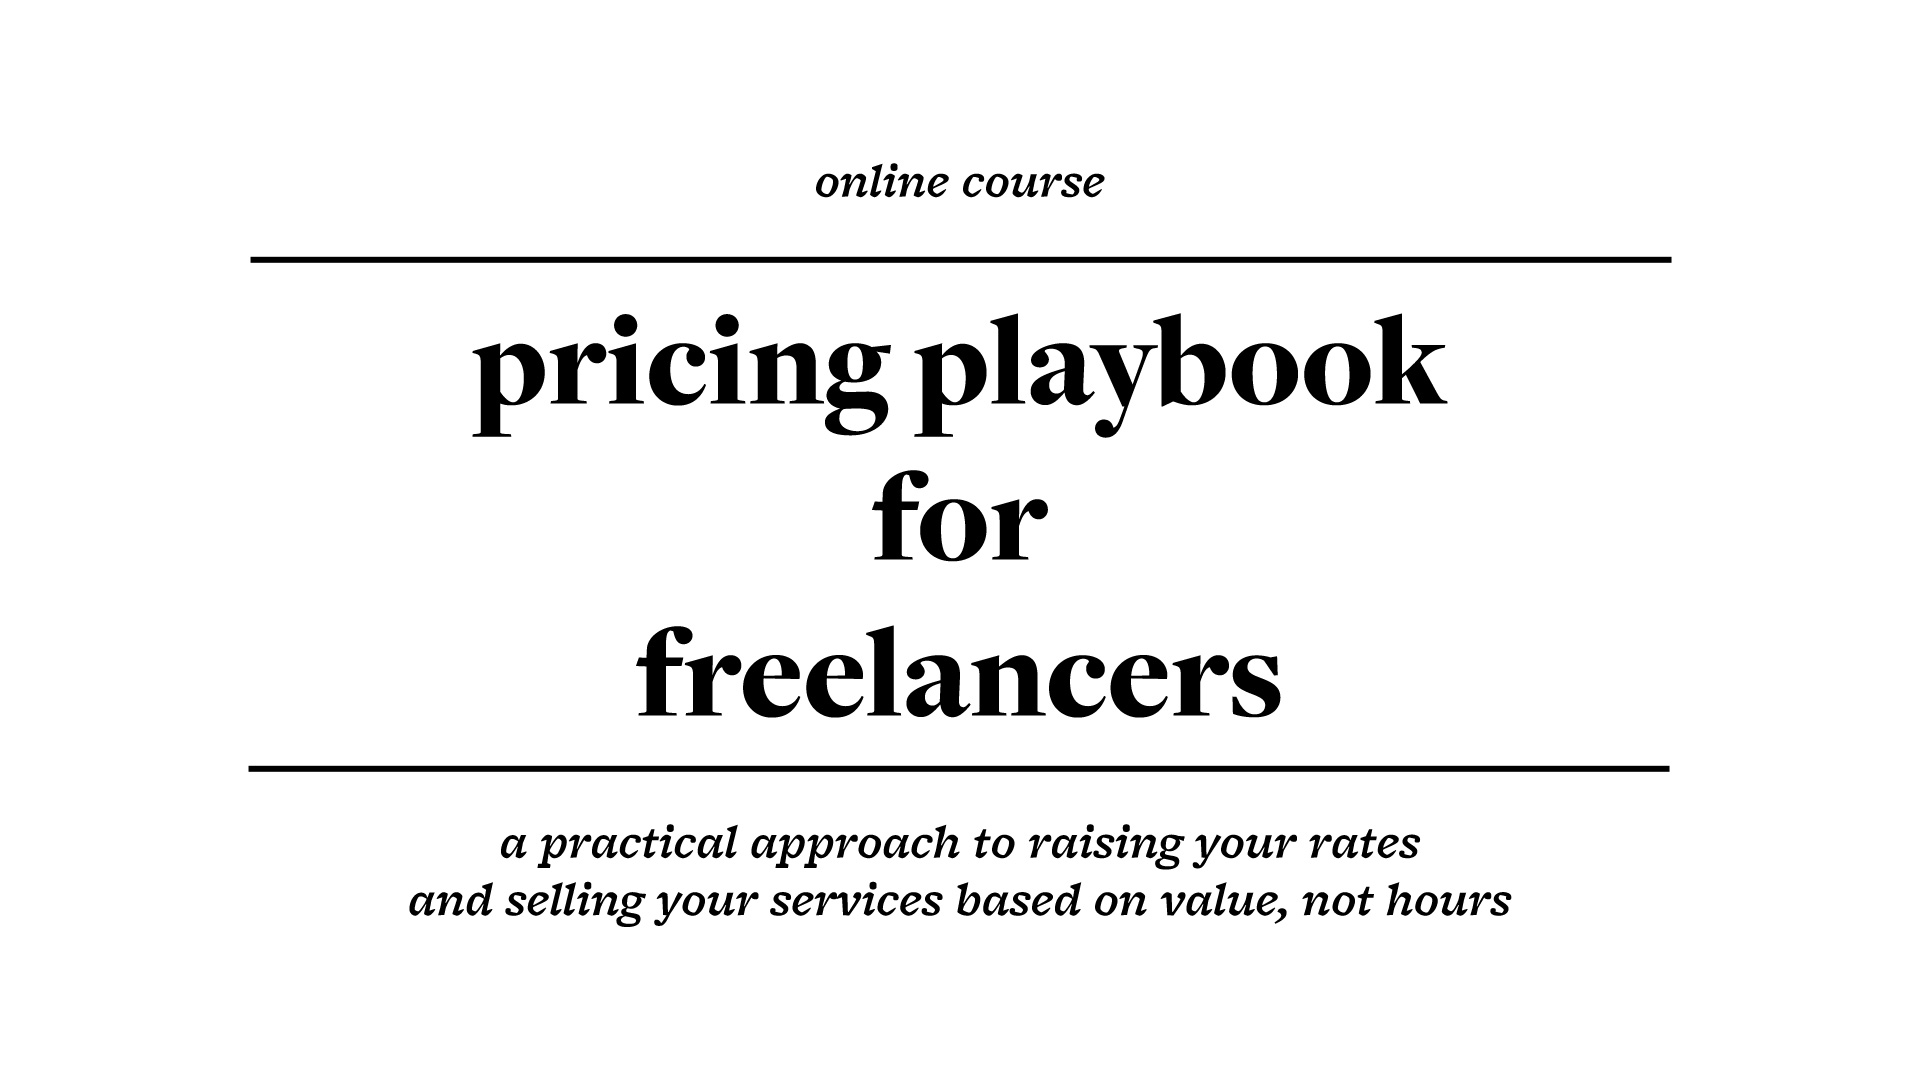 pricing playbook